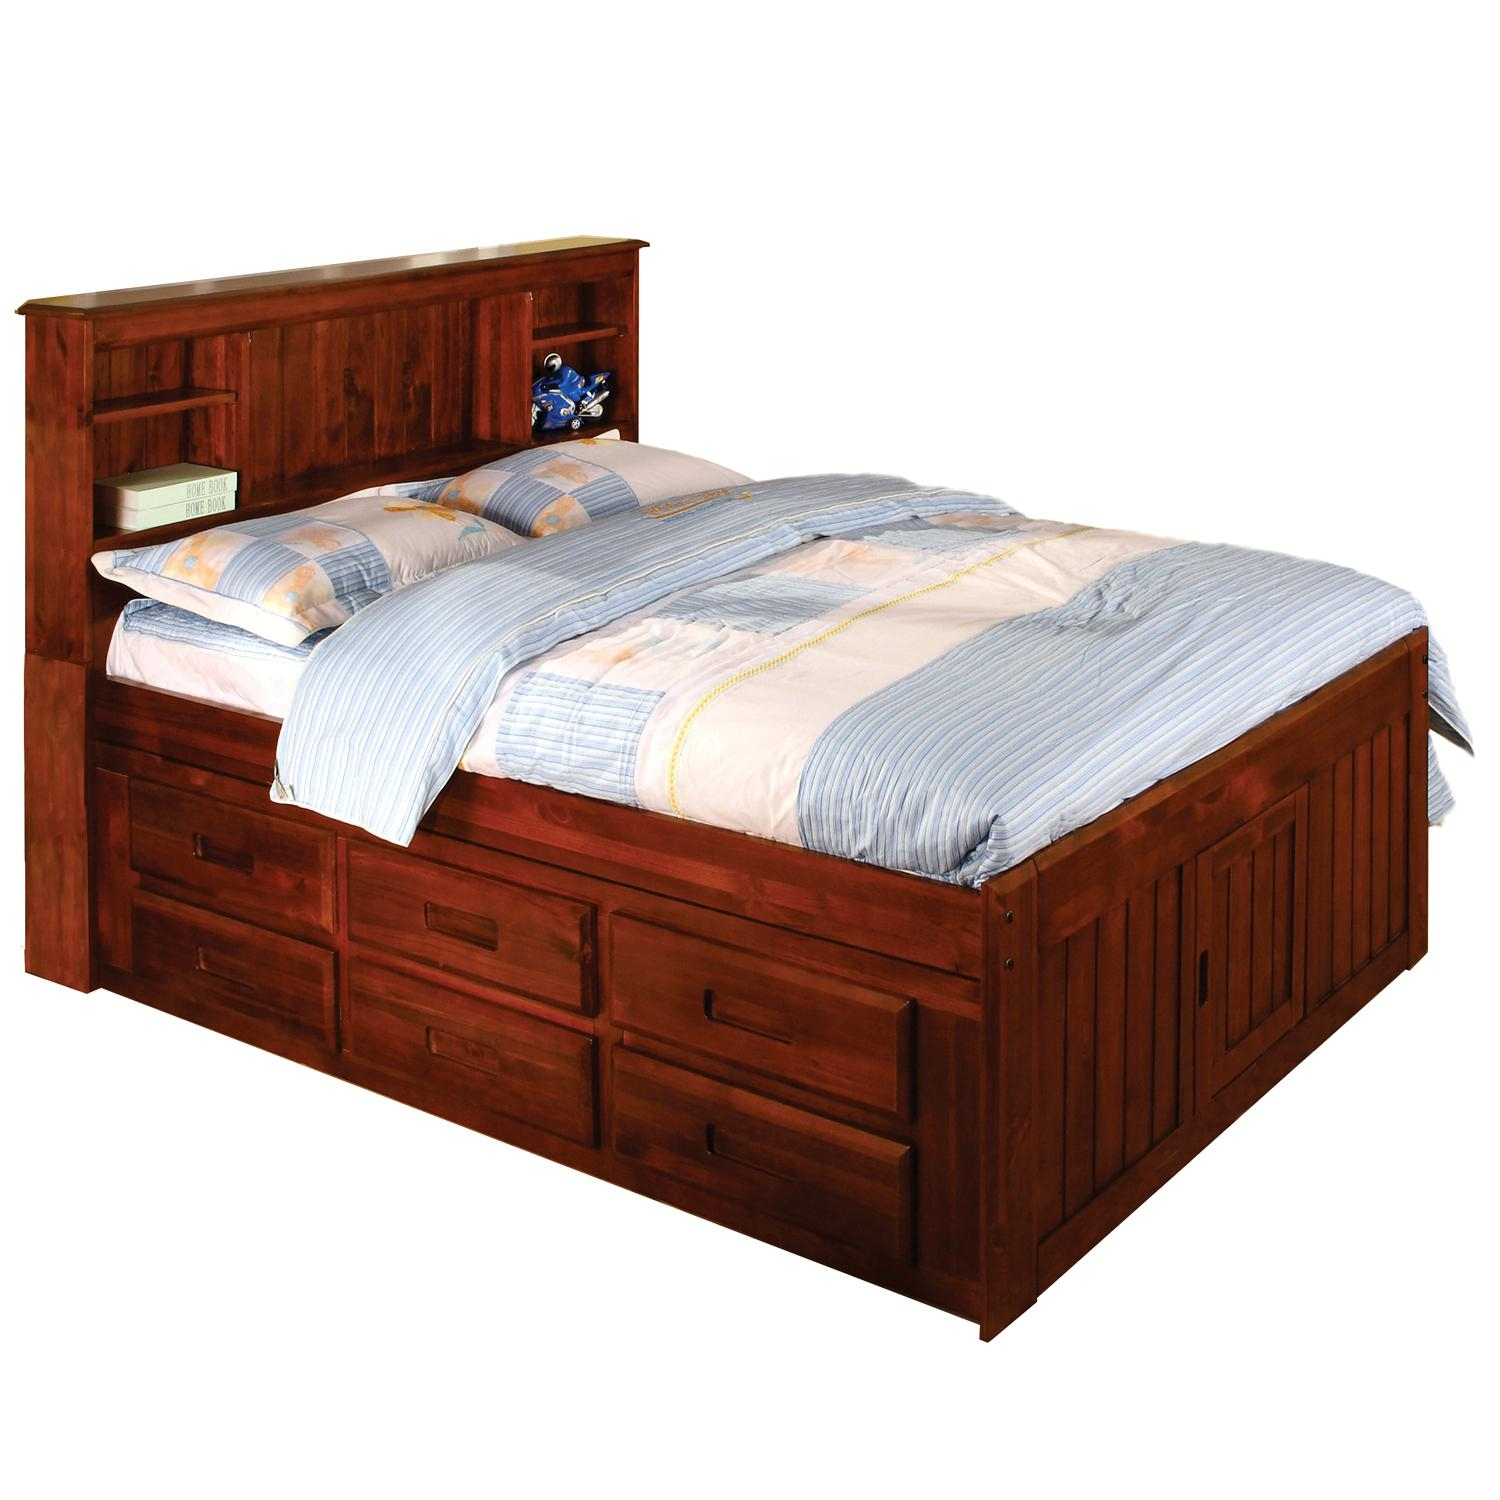 Oak Twin Bed Frame With Drawers